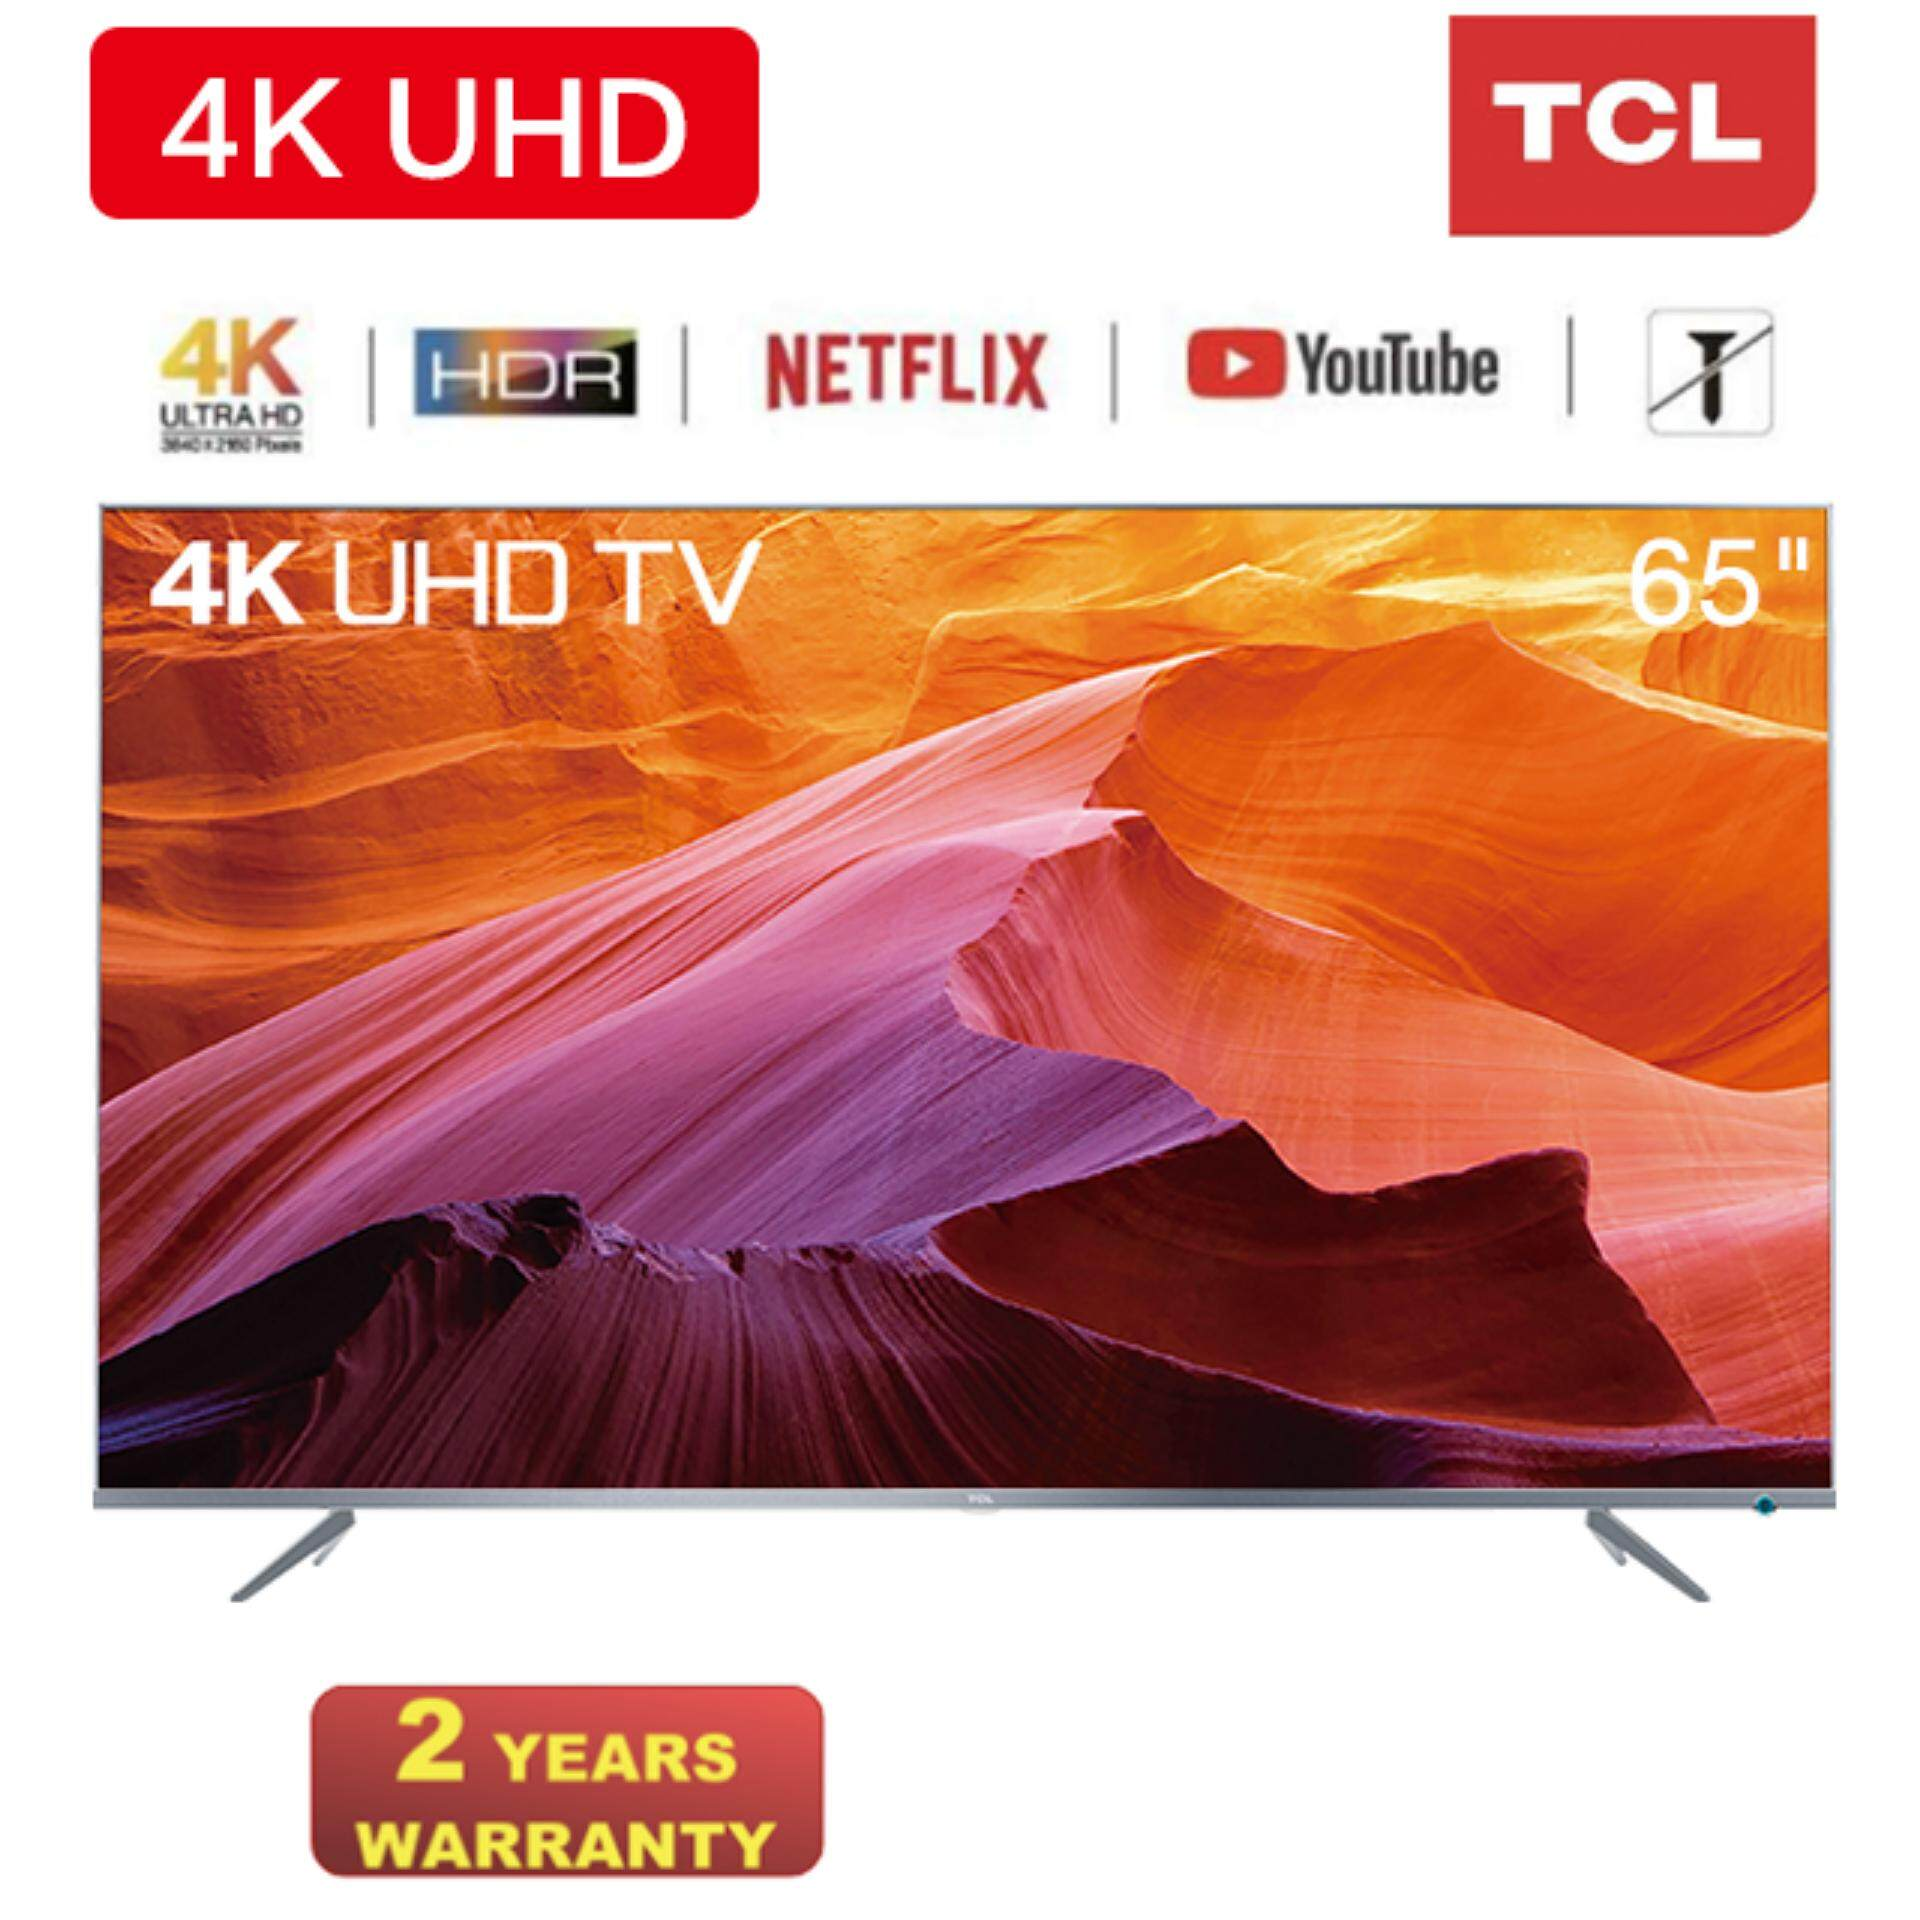 TCL 65 Inch 4K UHD Smart LED TV 65P6US - HDR / Dolby Audio / Netflix /  Youtube / APP Store / HDMI / USB / WiFi